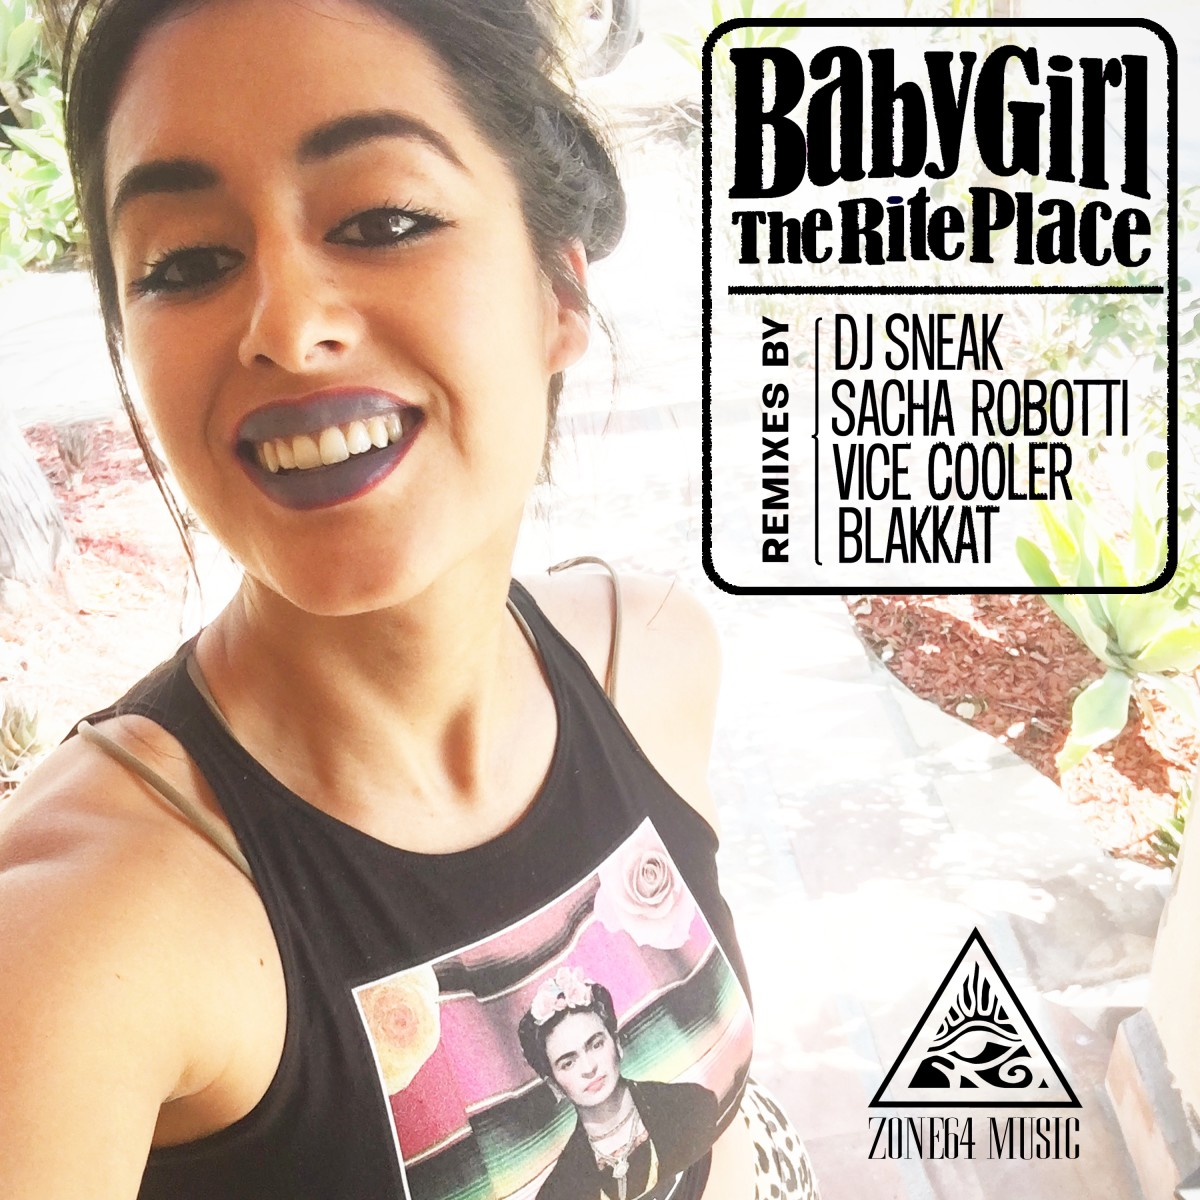 BabyGirl - The Rite Place cover